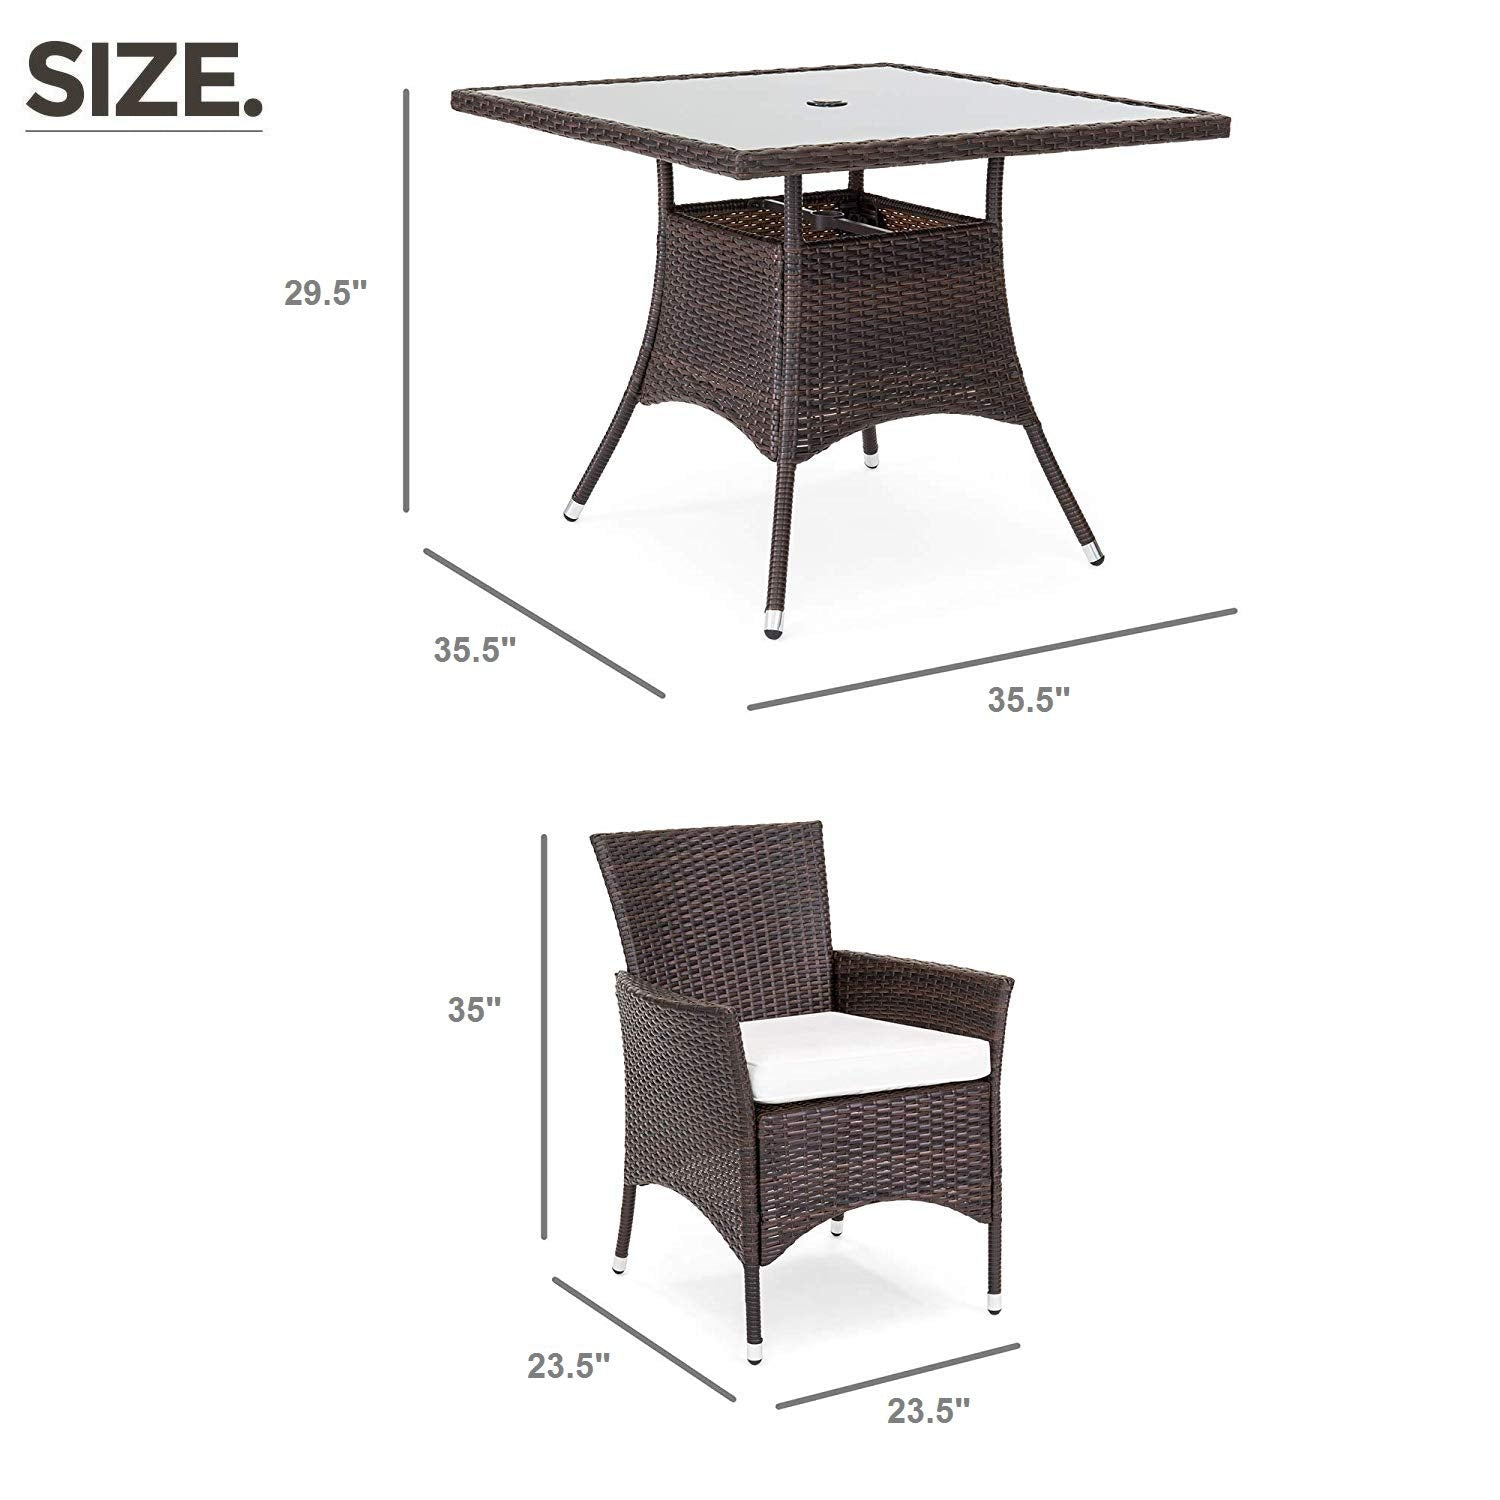 Brown Wicker OAKVILLE FURNITURE 61205 5-Piece Patio Set Square Glass Top Dining Table with Standard Umbrella Hole 4 Outdoor Chairs Beige Cushion